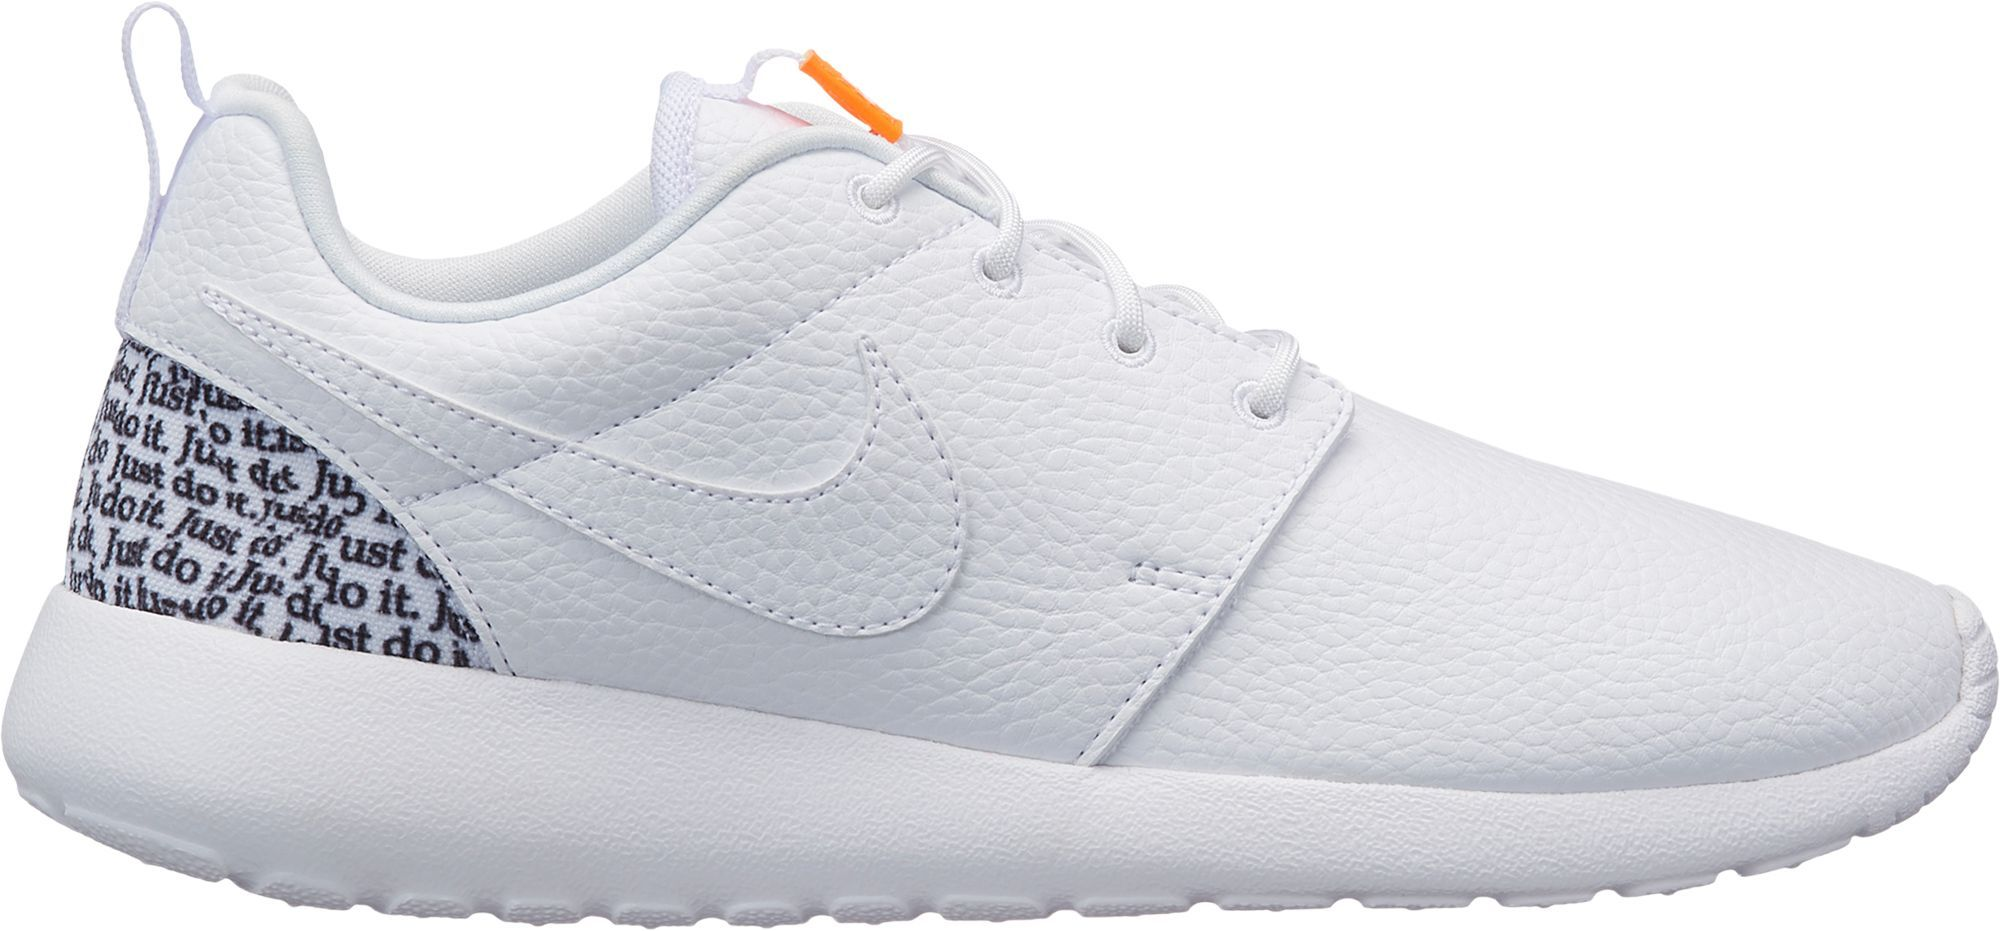 One Do Premium Roshe It White ShoesProducts Nike Women's Just kZuiPX